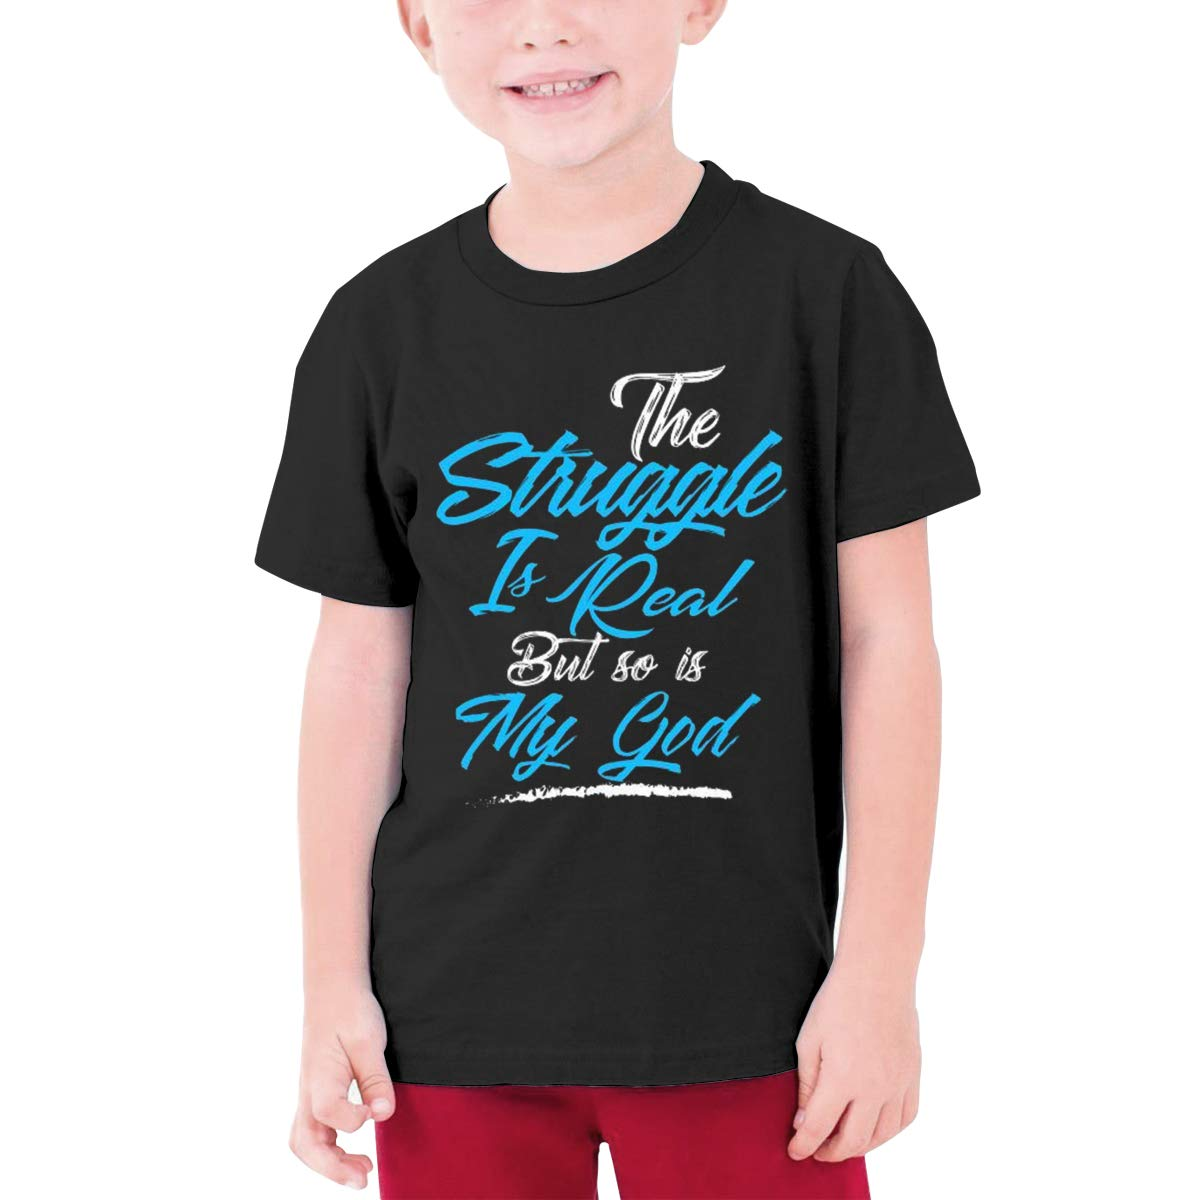 Alffe The?Struggle?is?Real?BUT?SO?is?GOD T-Shirt Boy Kids O-Neck 3D Printing Youth Fashion Tops